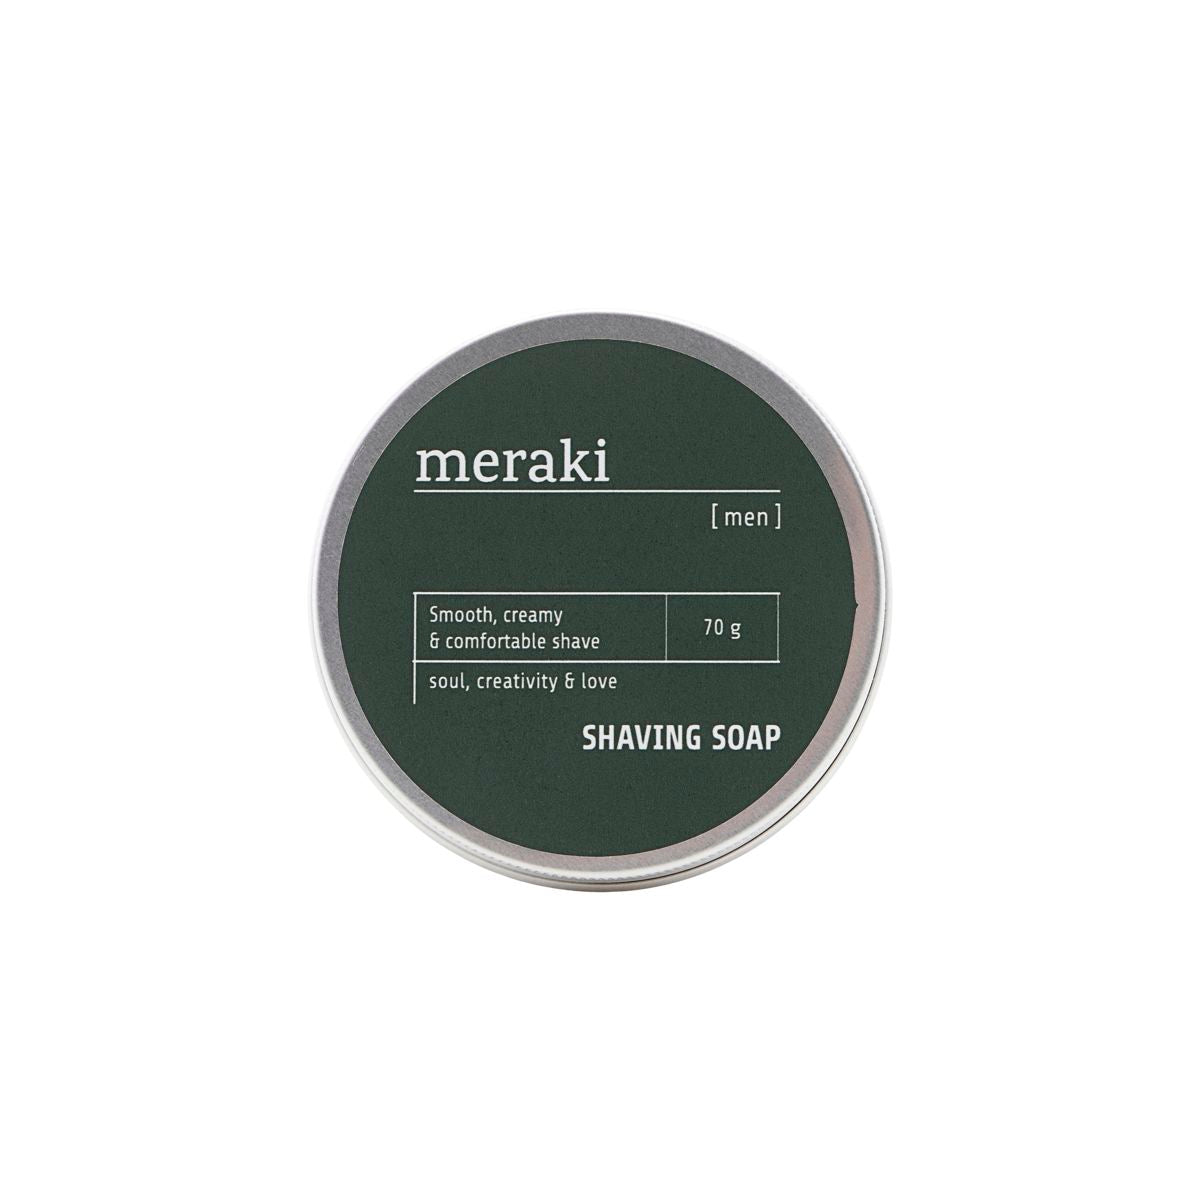 Shaving soap, Men fra Meraki